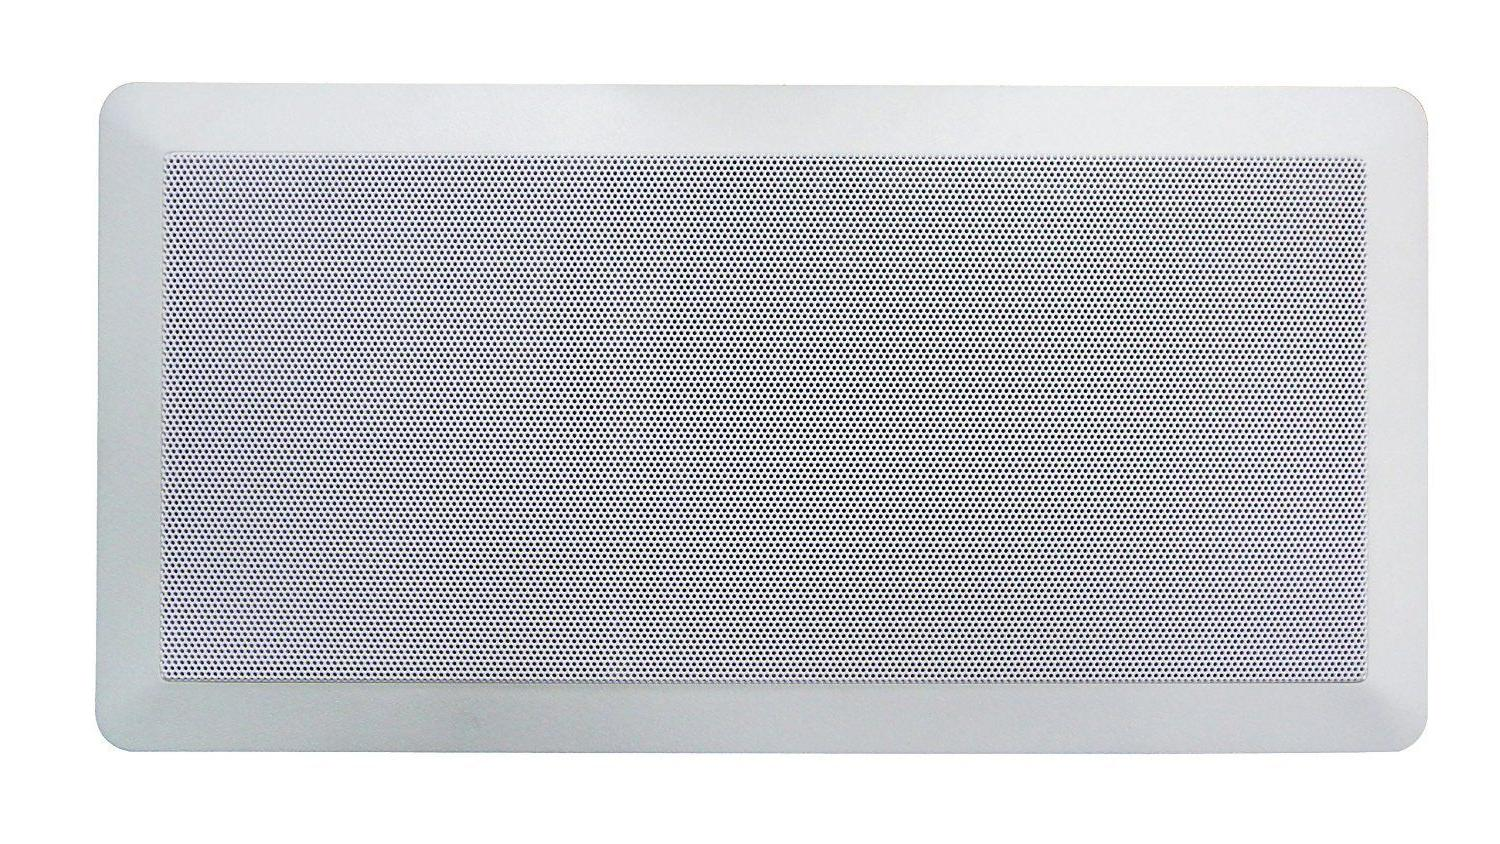 Silver Ticket Surround Sound Speaker In Ceiling 1x 82W